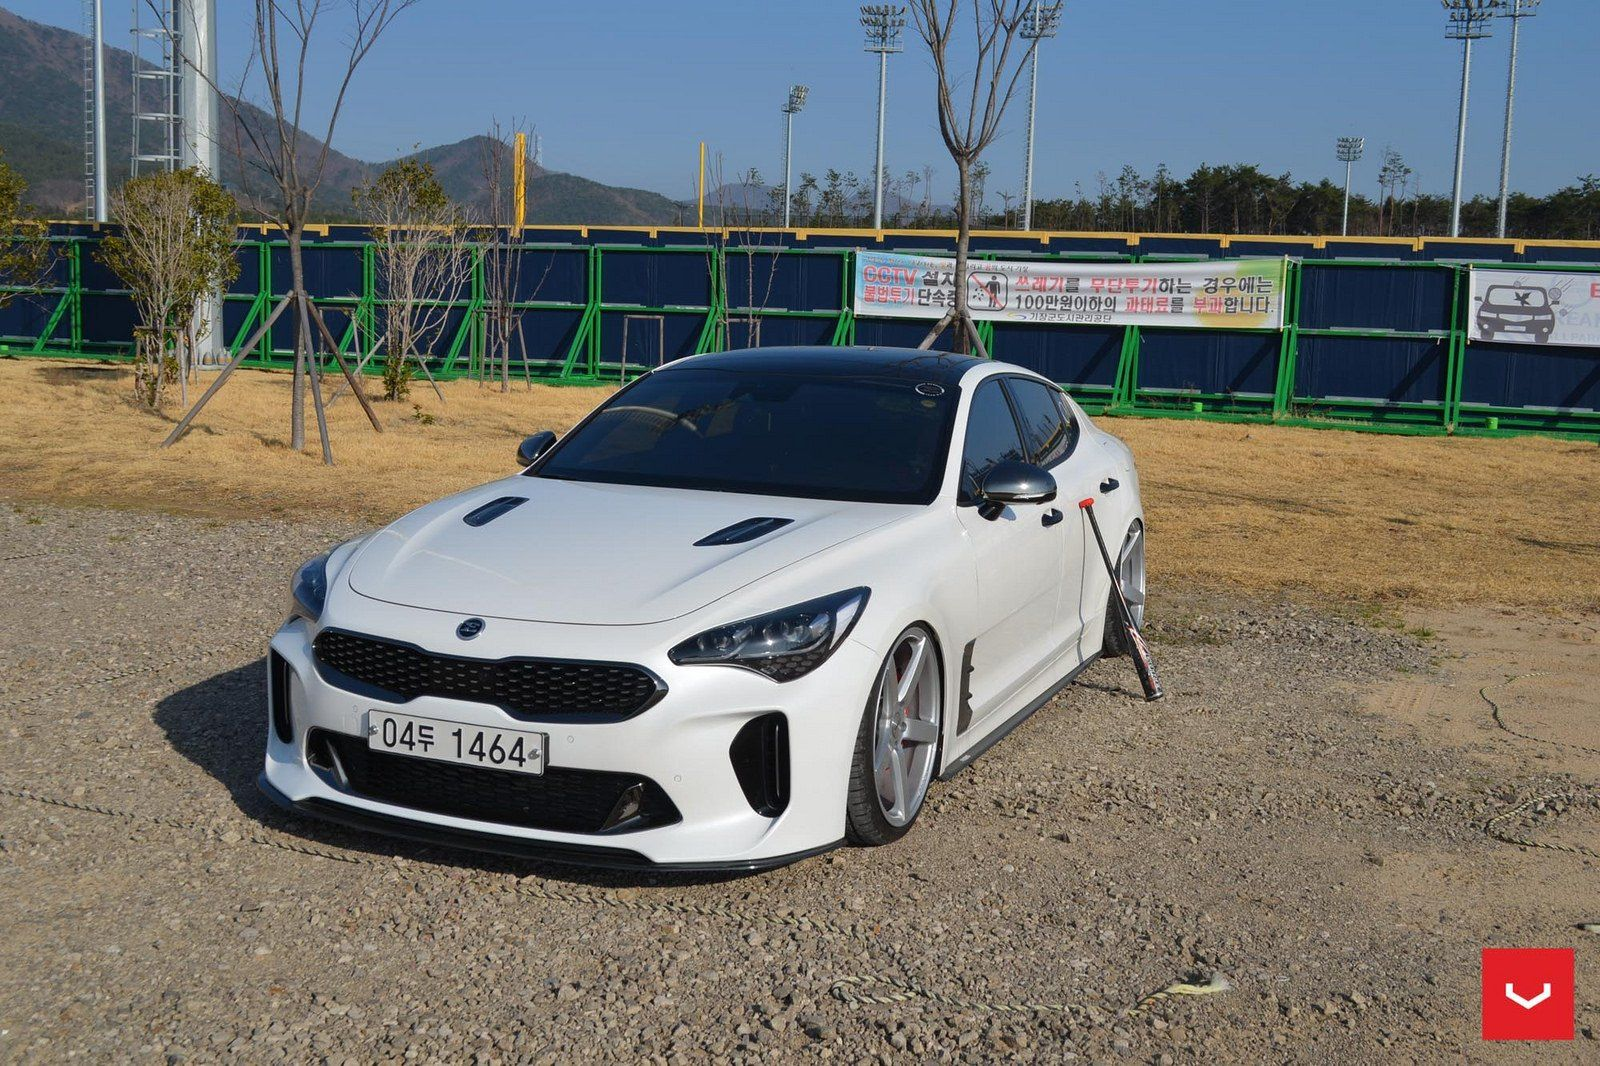 White Kia Stinger Gets A Revised Front With Custom Hood And Blacked Out Grille Kia Stinger Kia Black